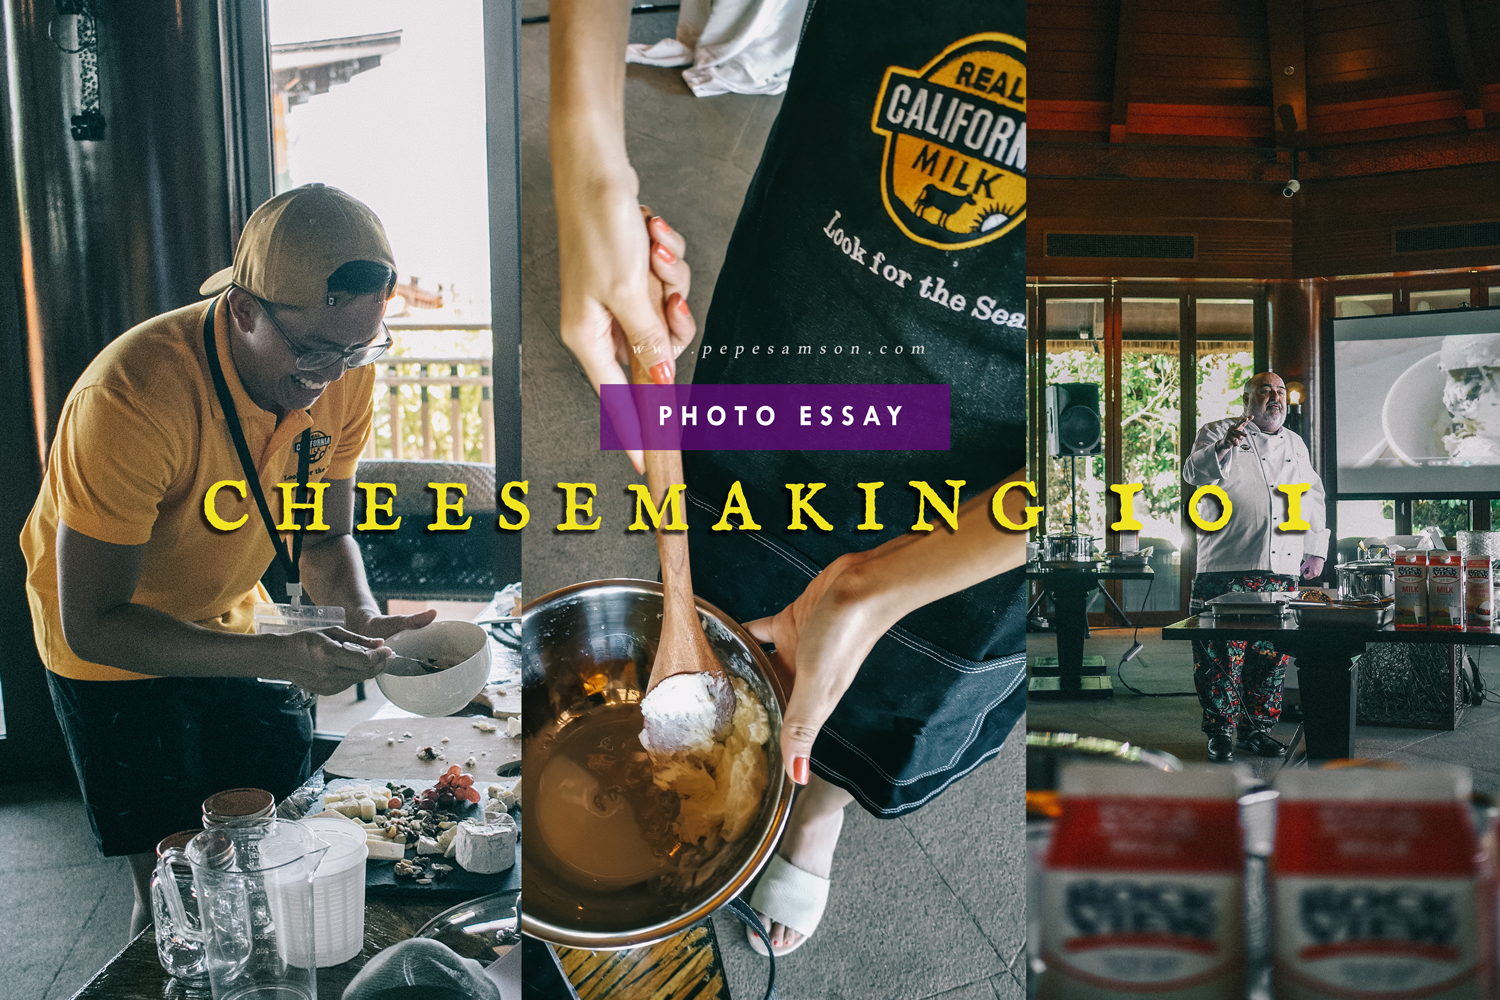 IN PHOTOS: Cheesemaking Workshop in Boracay